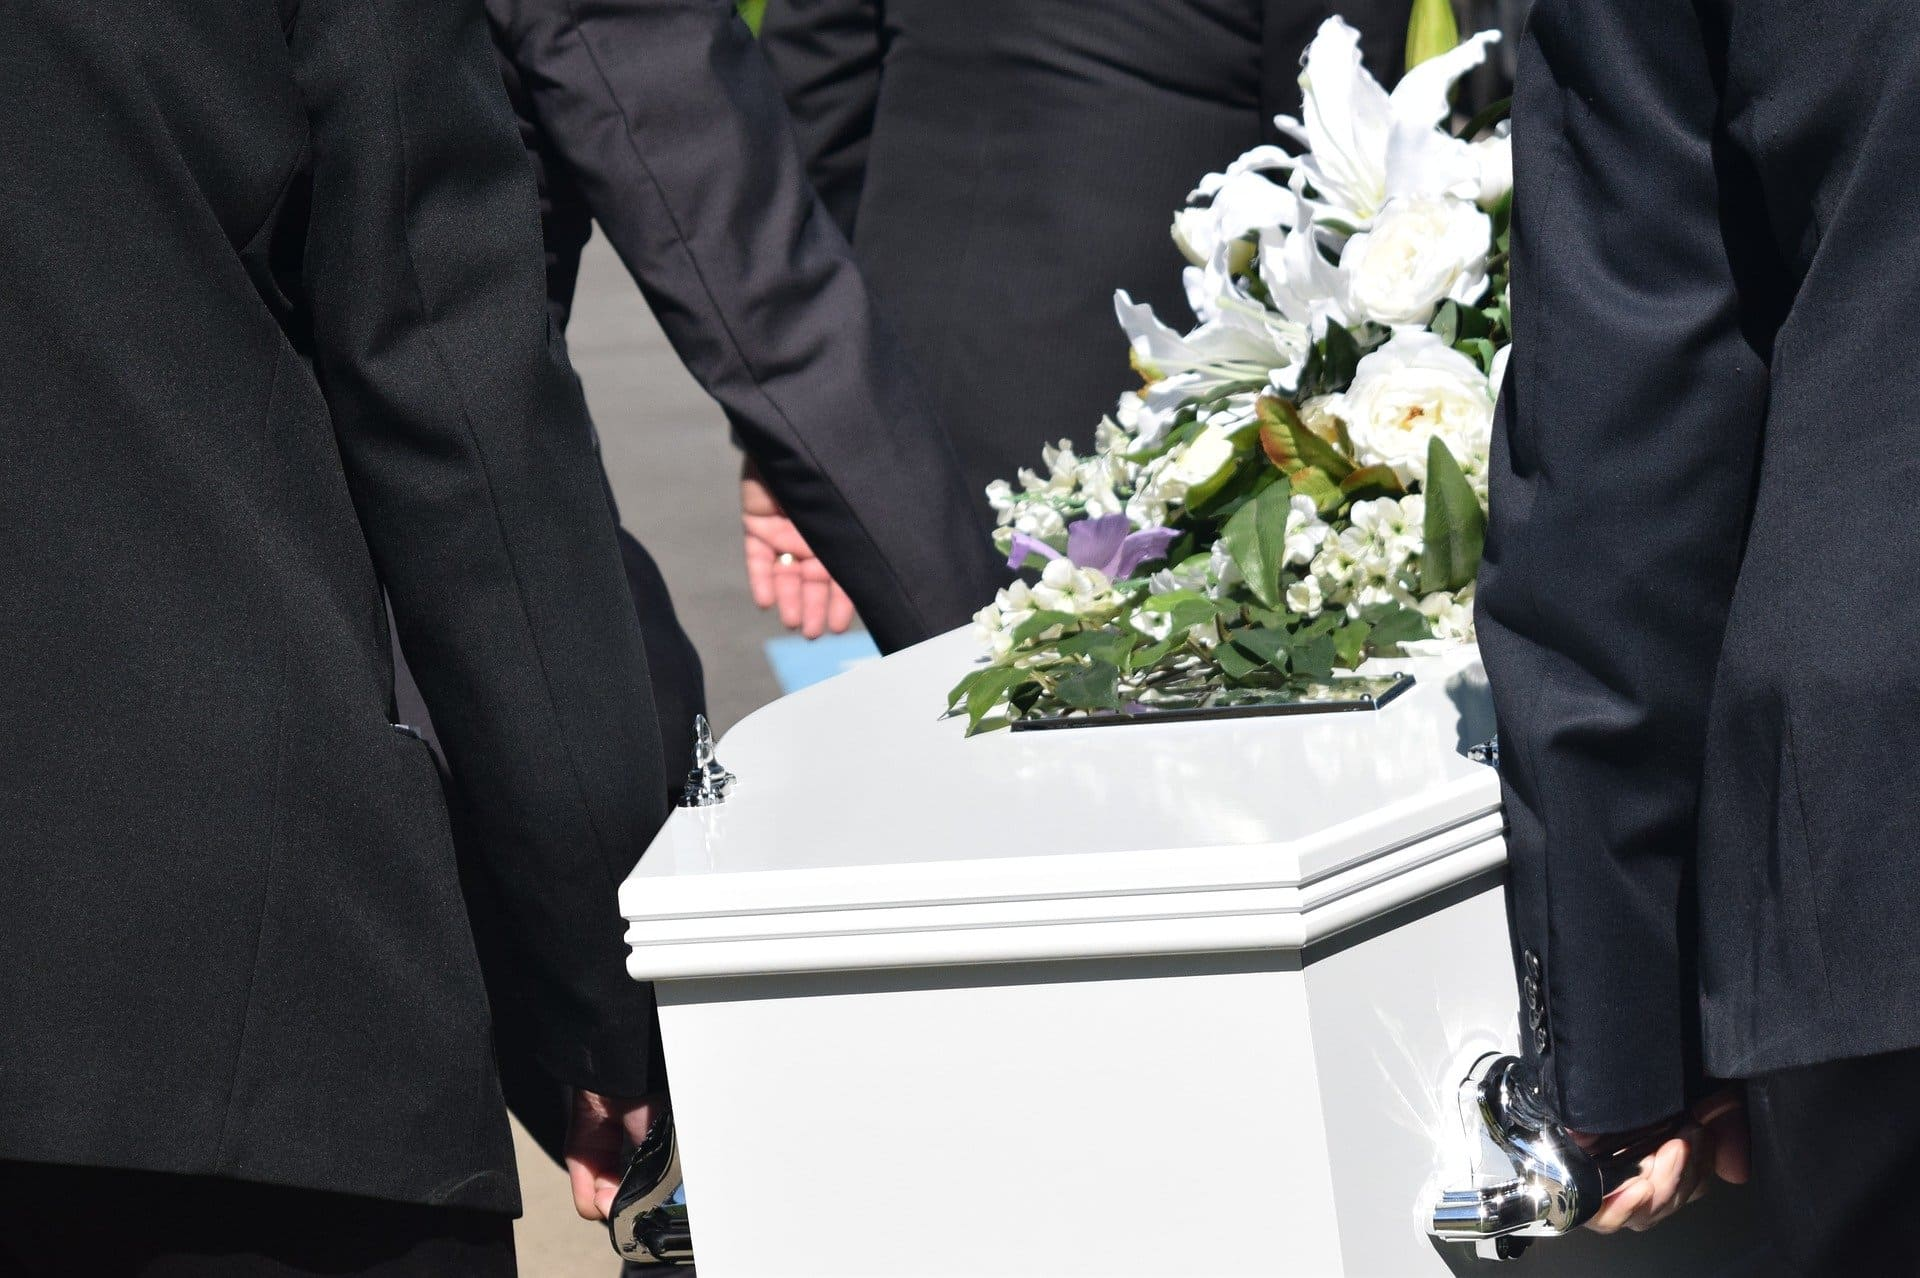 casket being carried